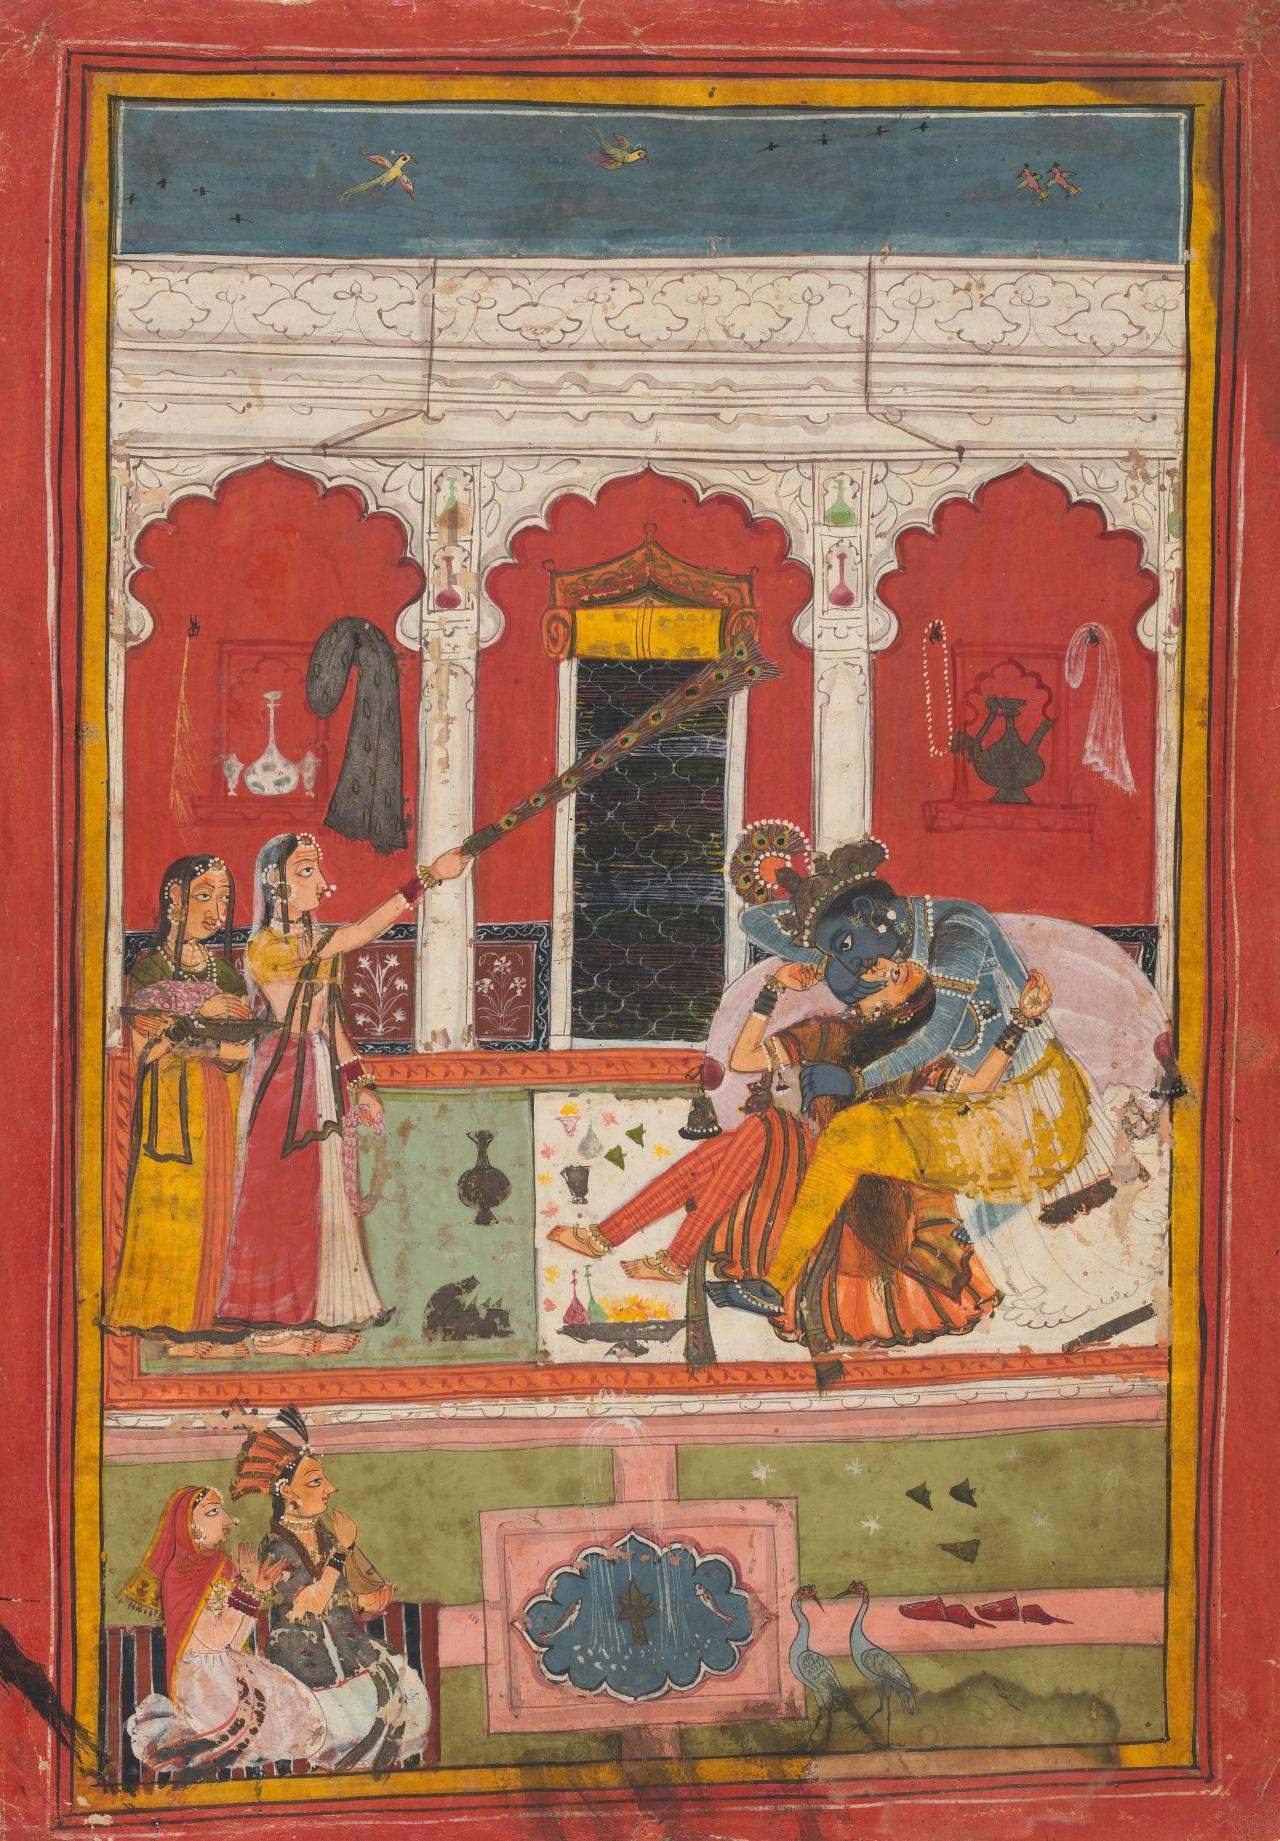 Radha and Krishna embracing in a palace